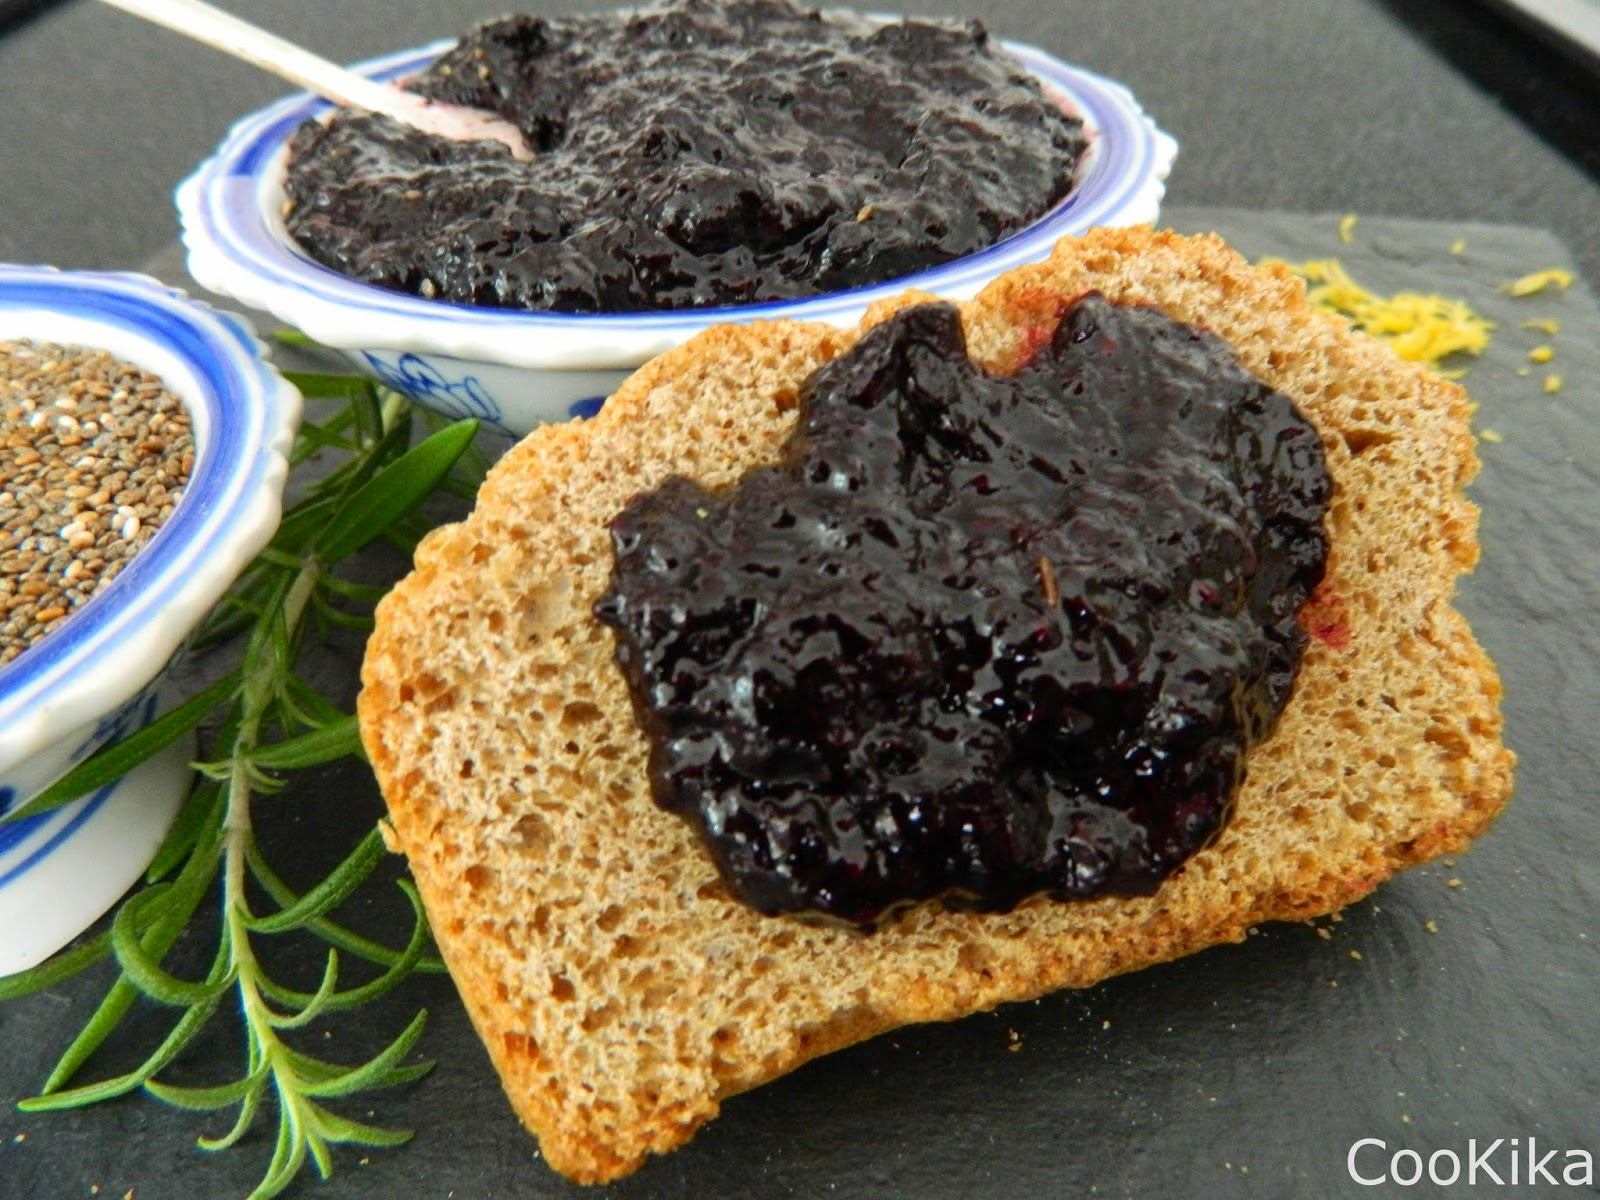 Blueberry jam chia seeds